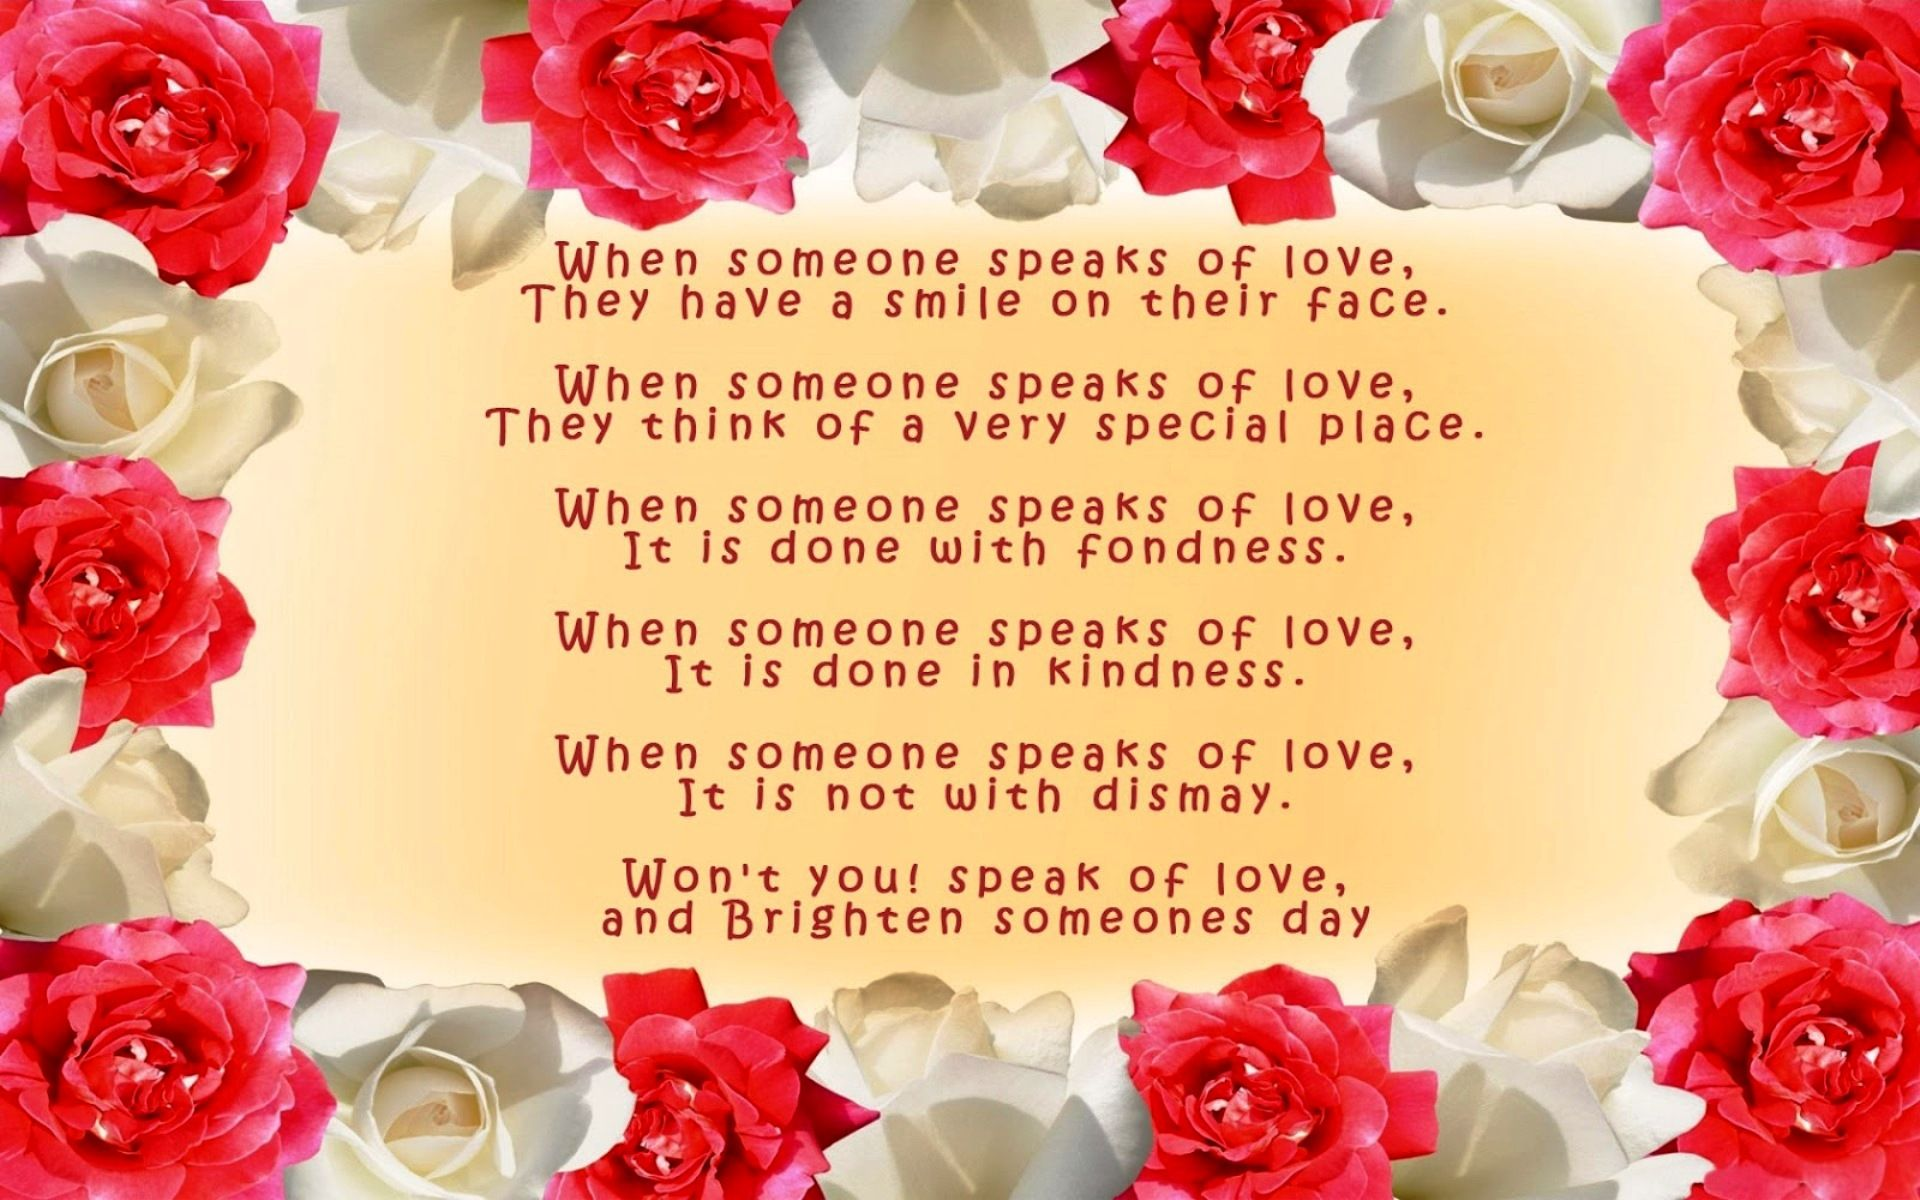 Free download love poem roses wallpaper love poem roses free download love poem roses wallpaper love poem roses wallpaper for desktop please your kristyandbryce Choice Image